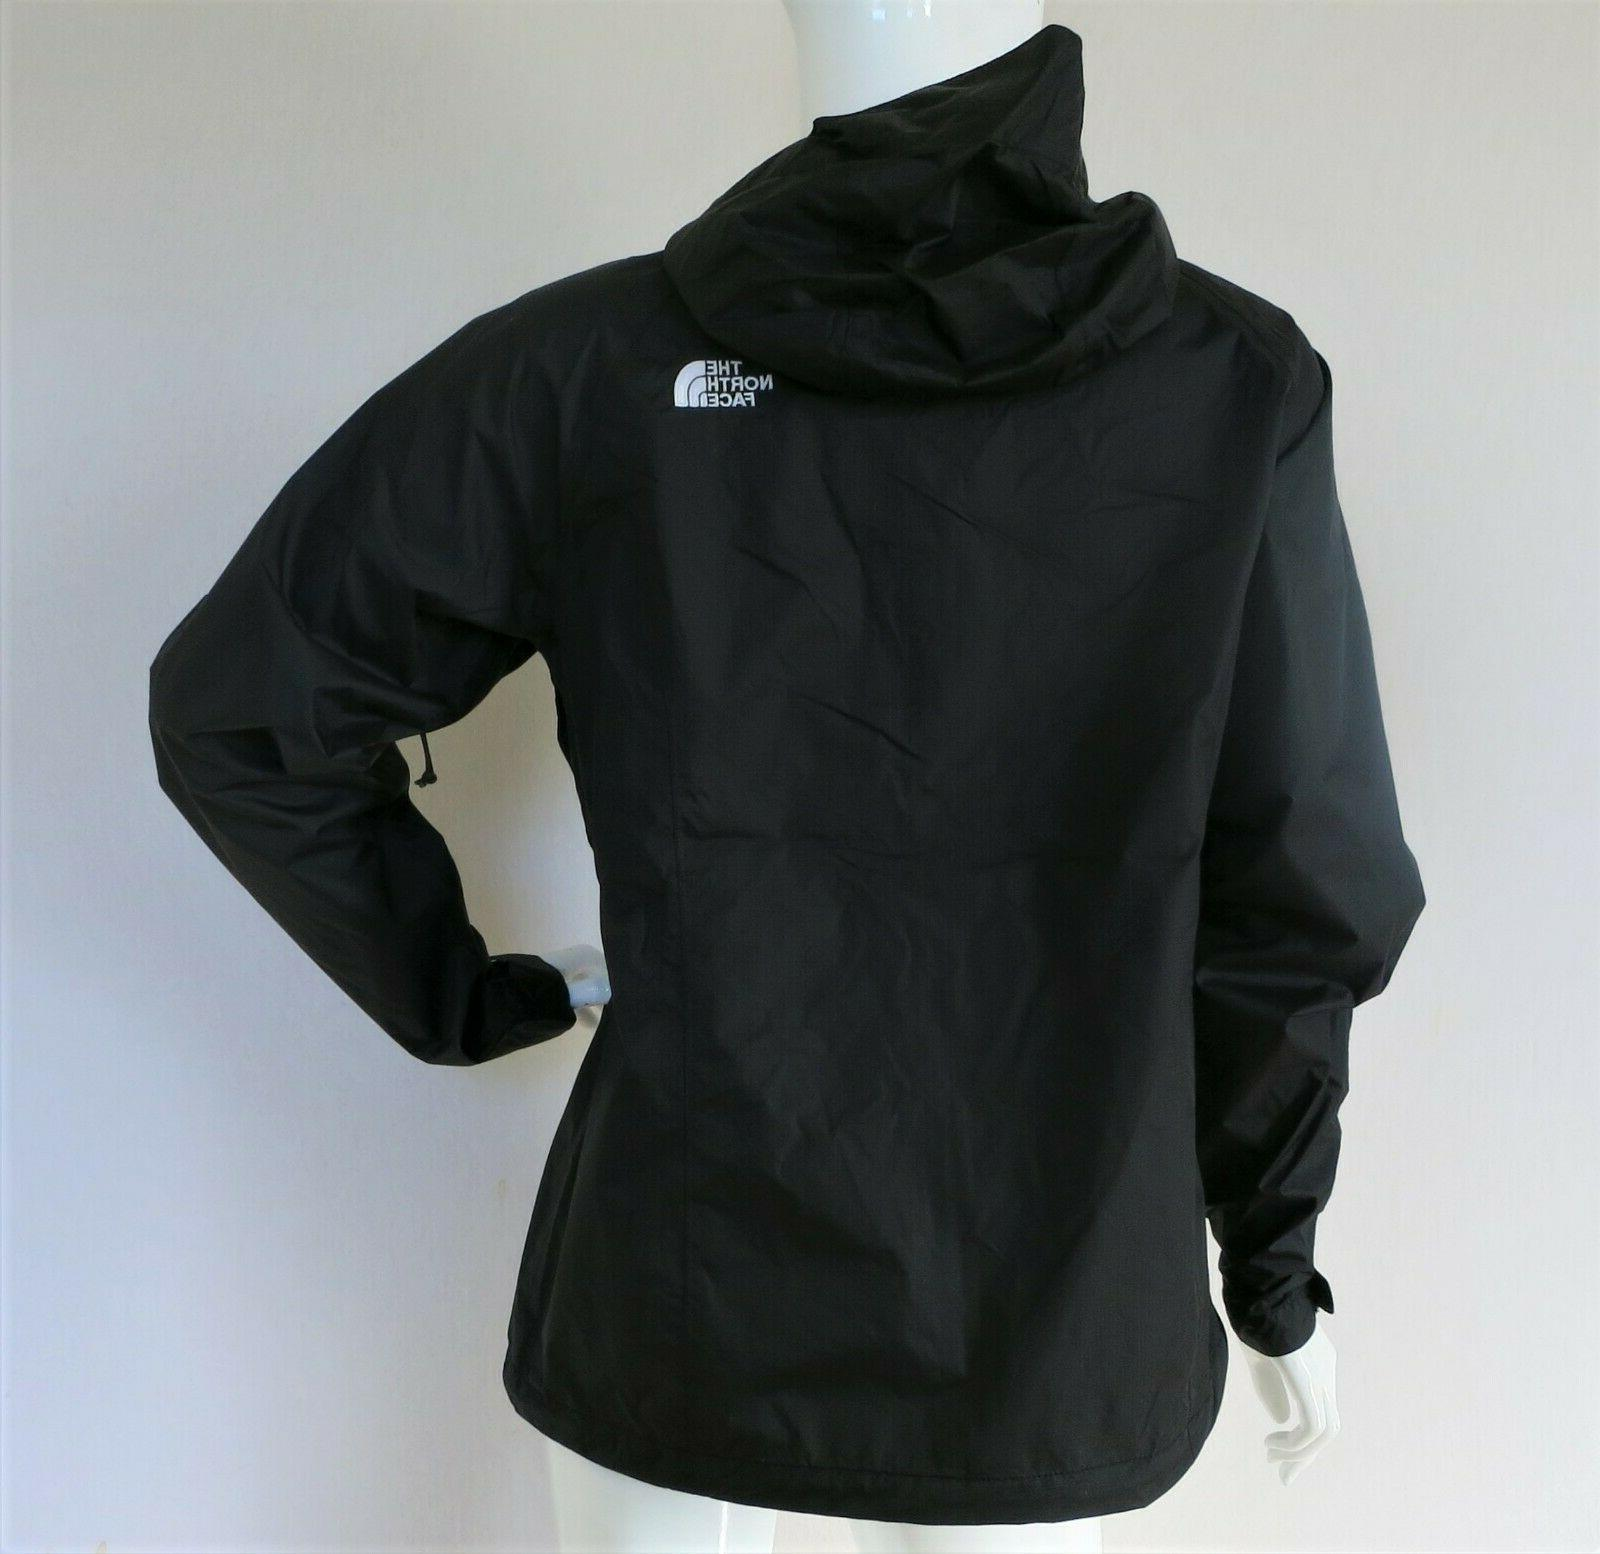 THE NORTH FACE Women's BLACK MSRP